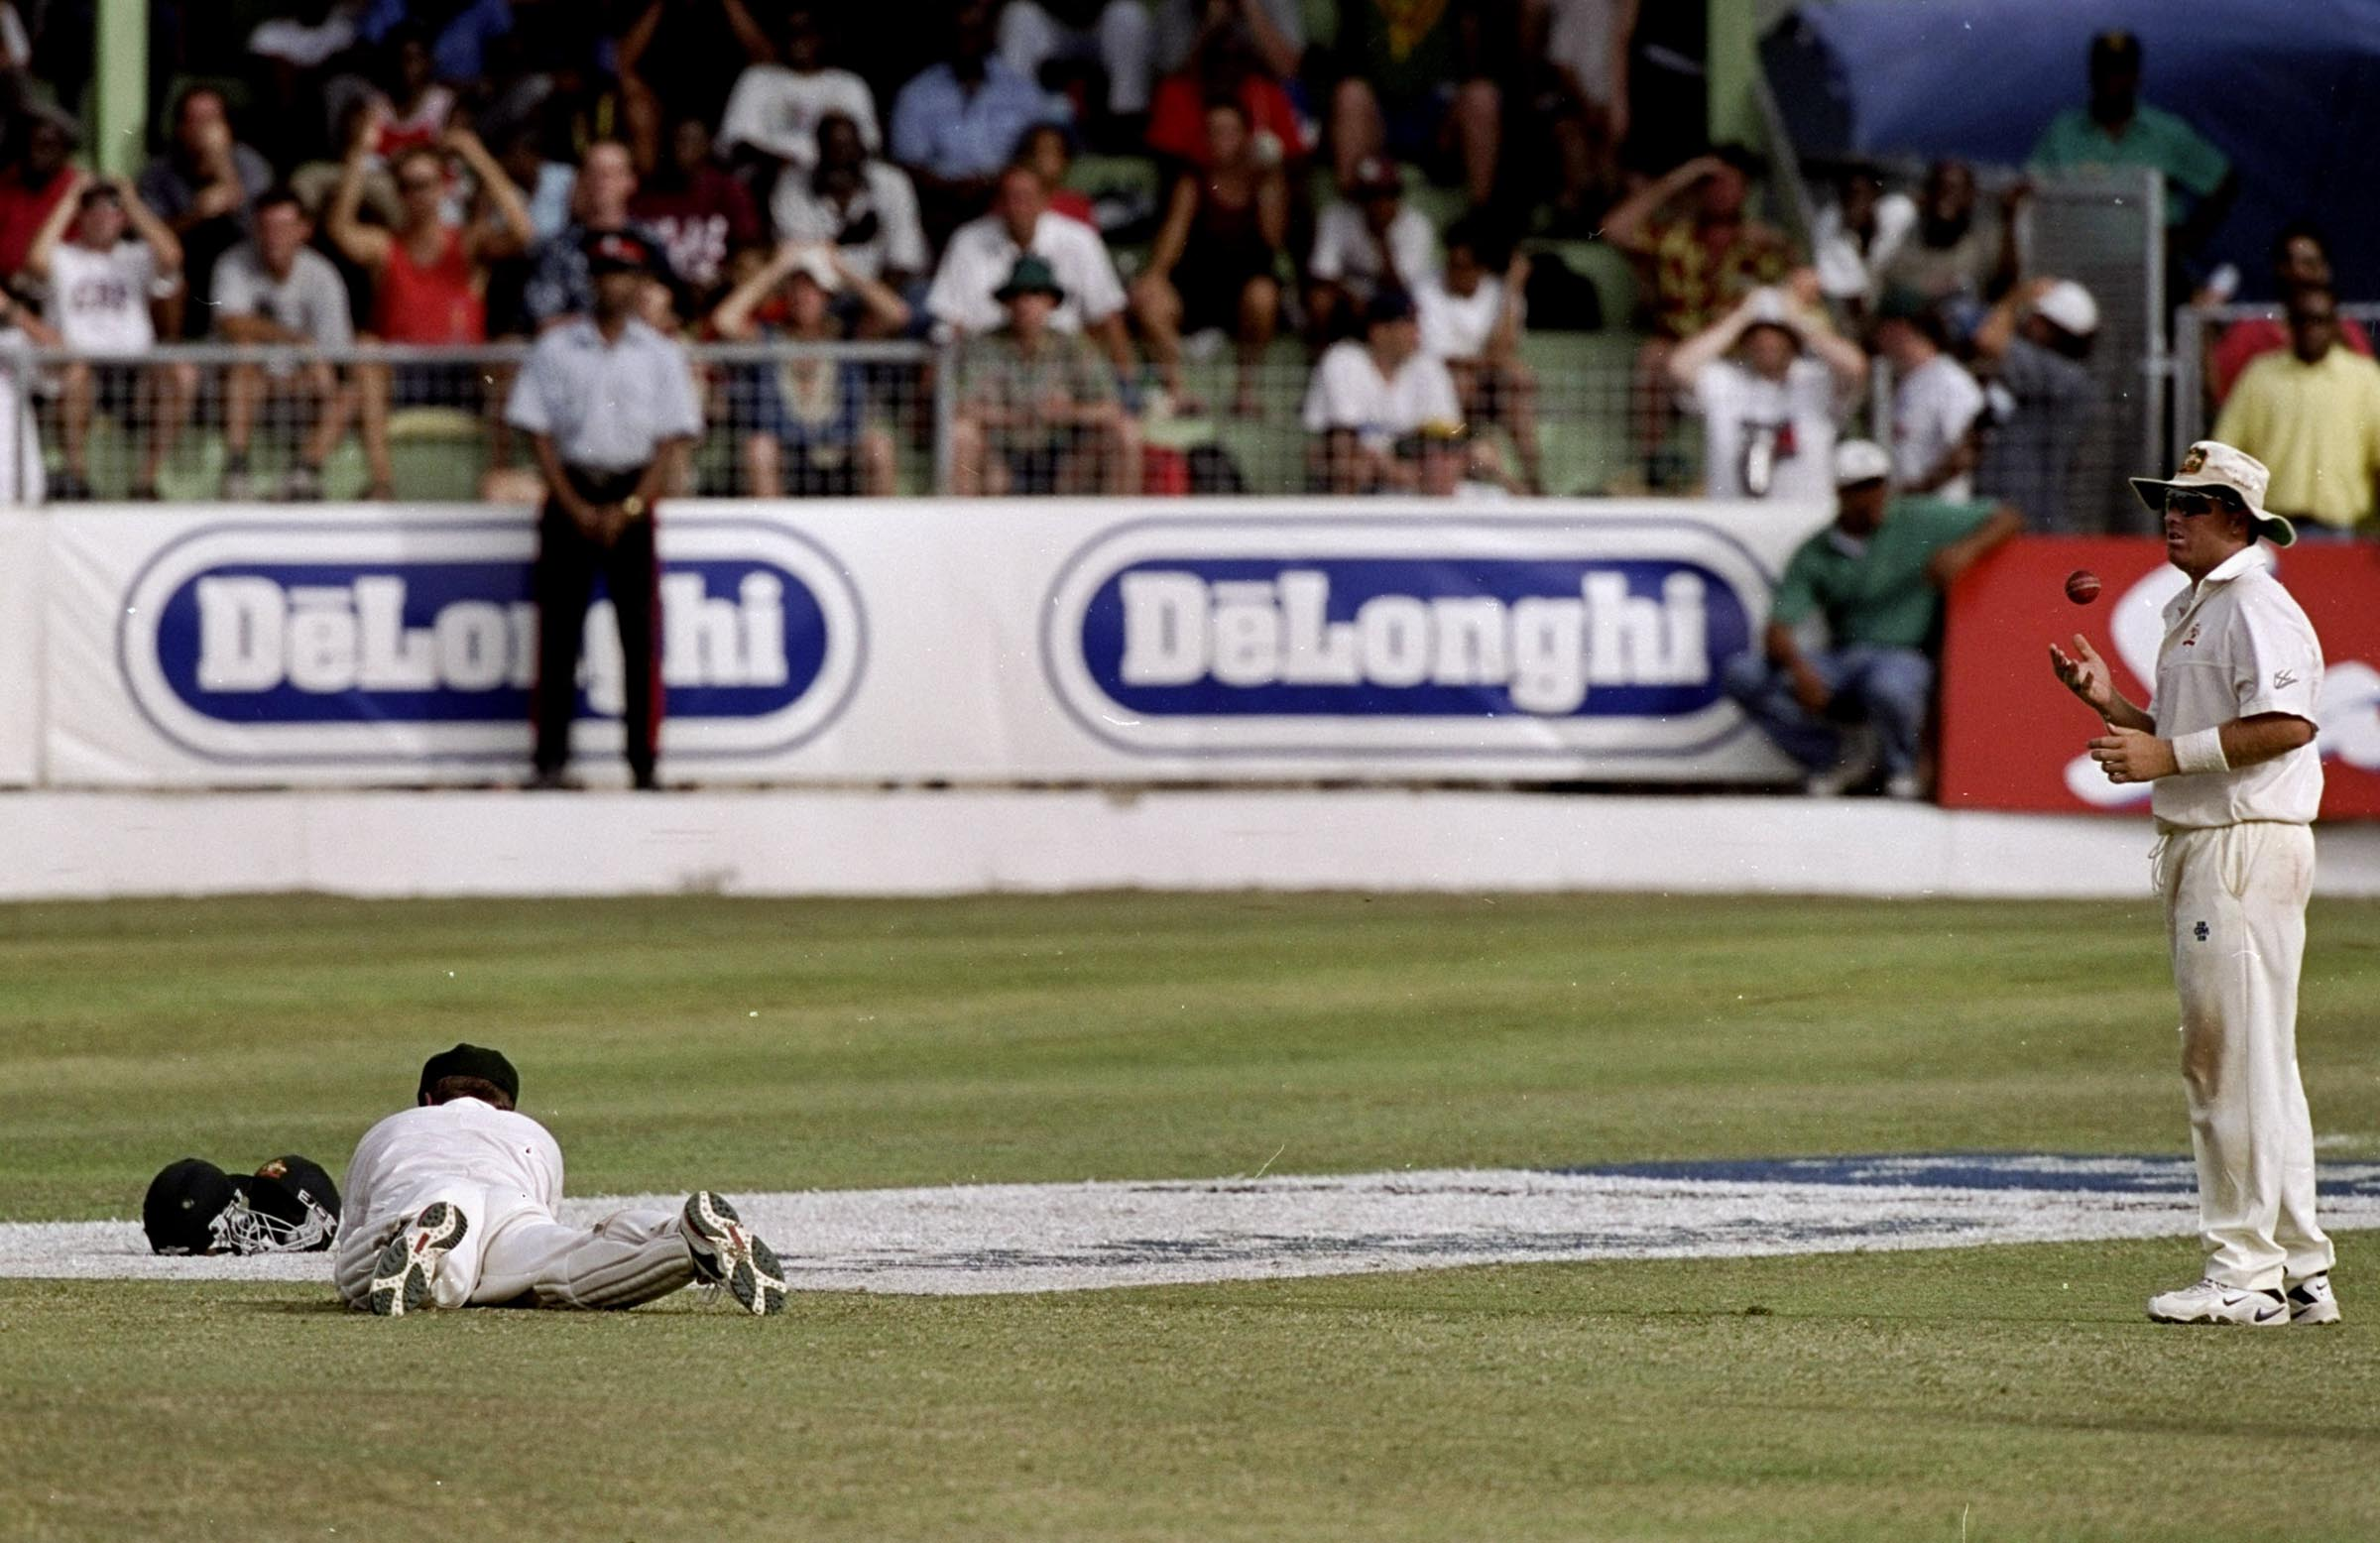 Ian Healy and Shane Warne react after Healy's crucial dropped catch // Getty